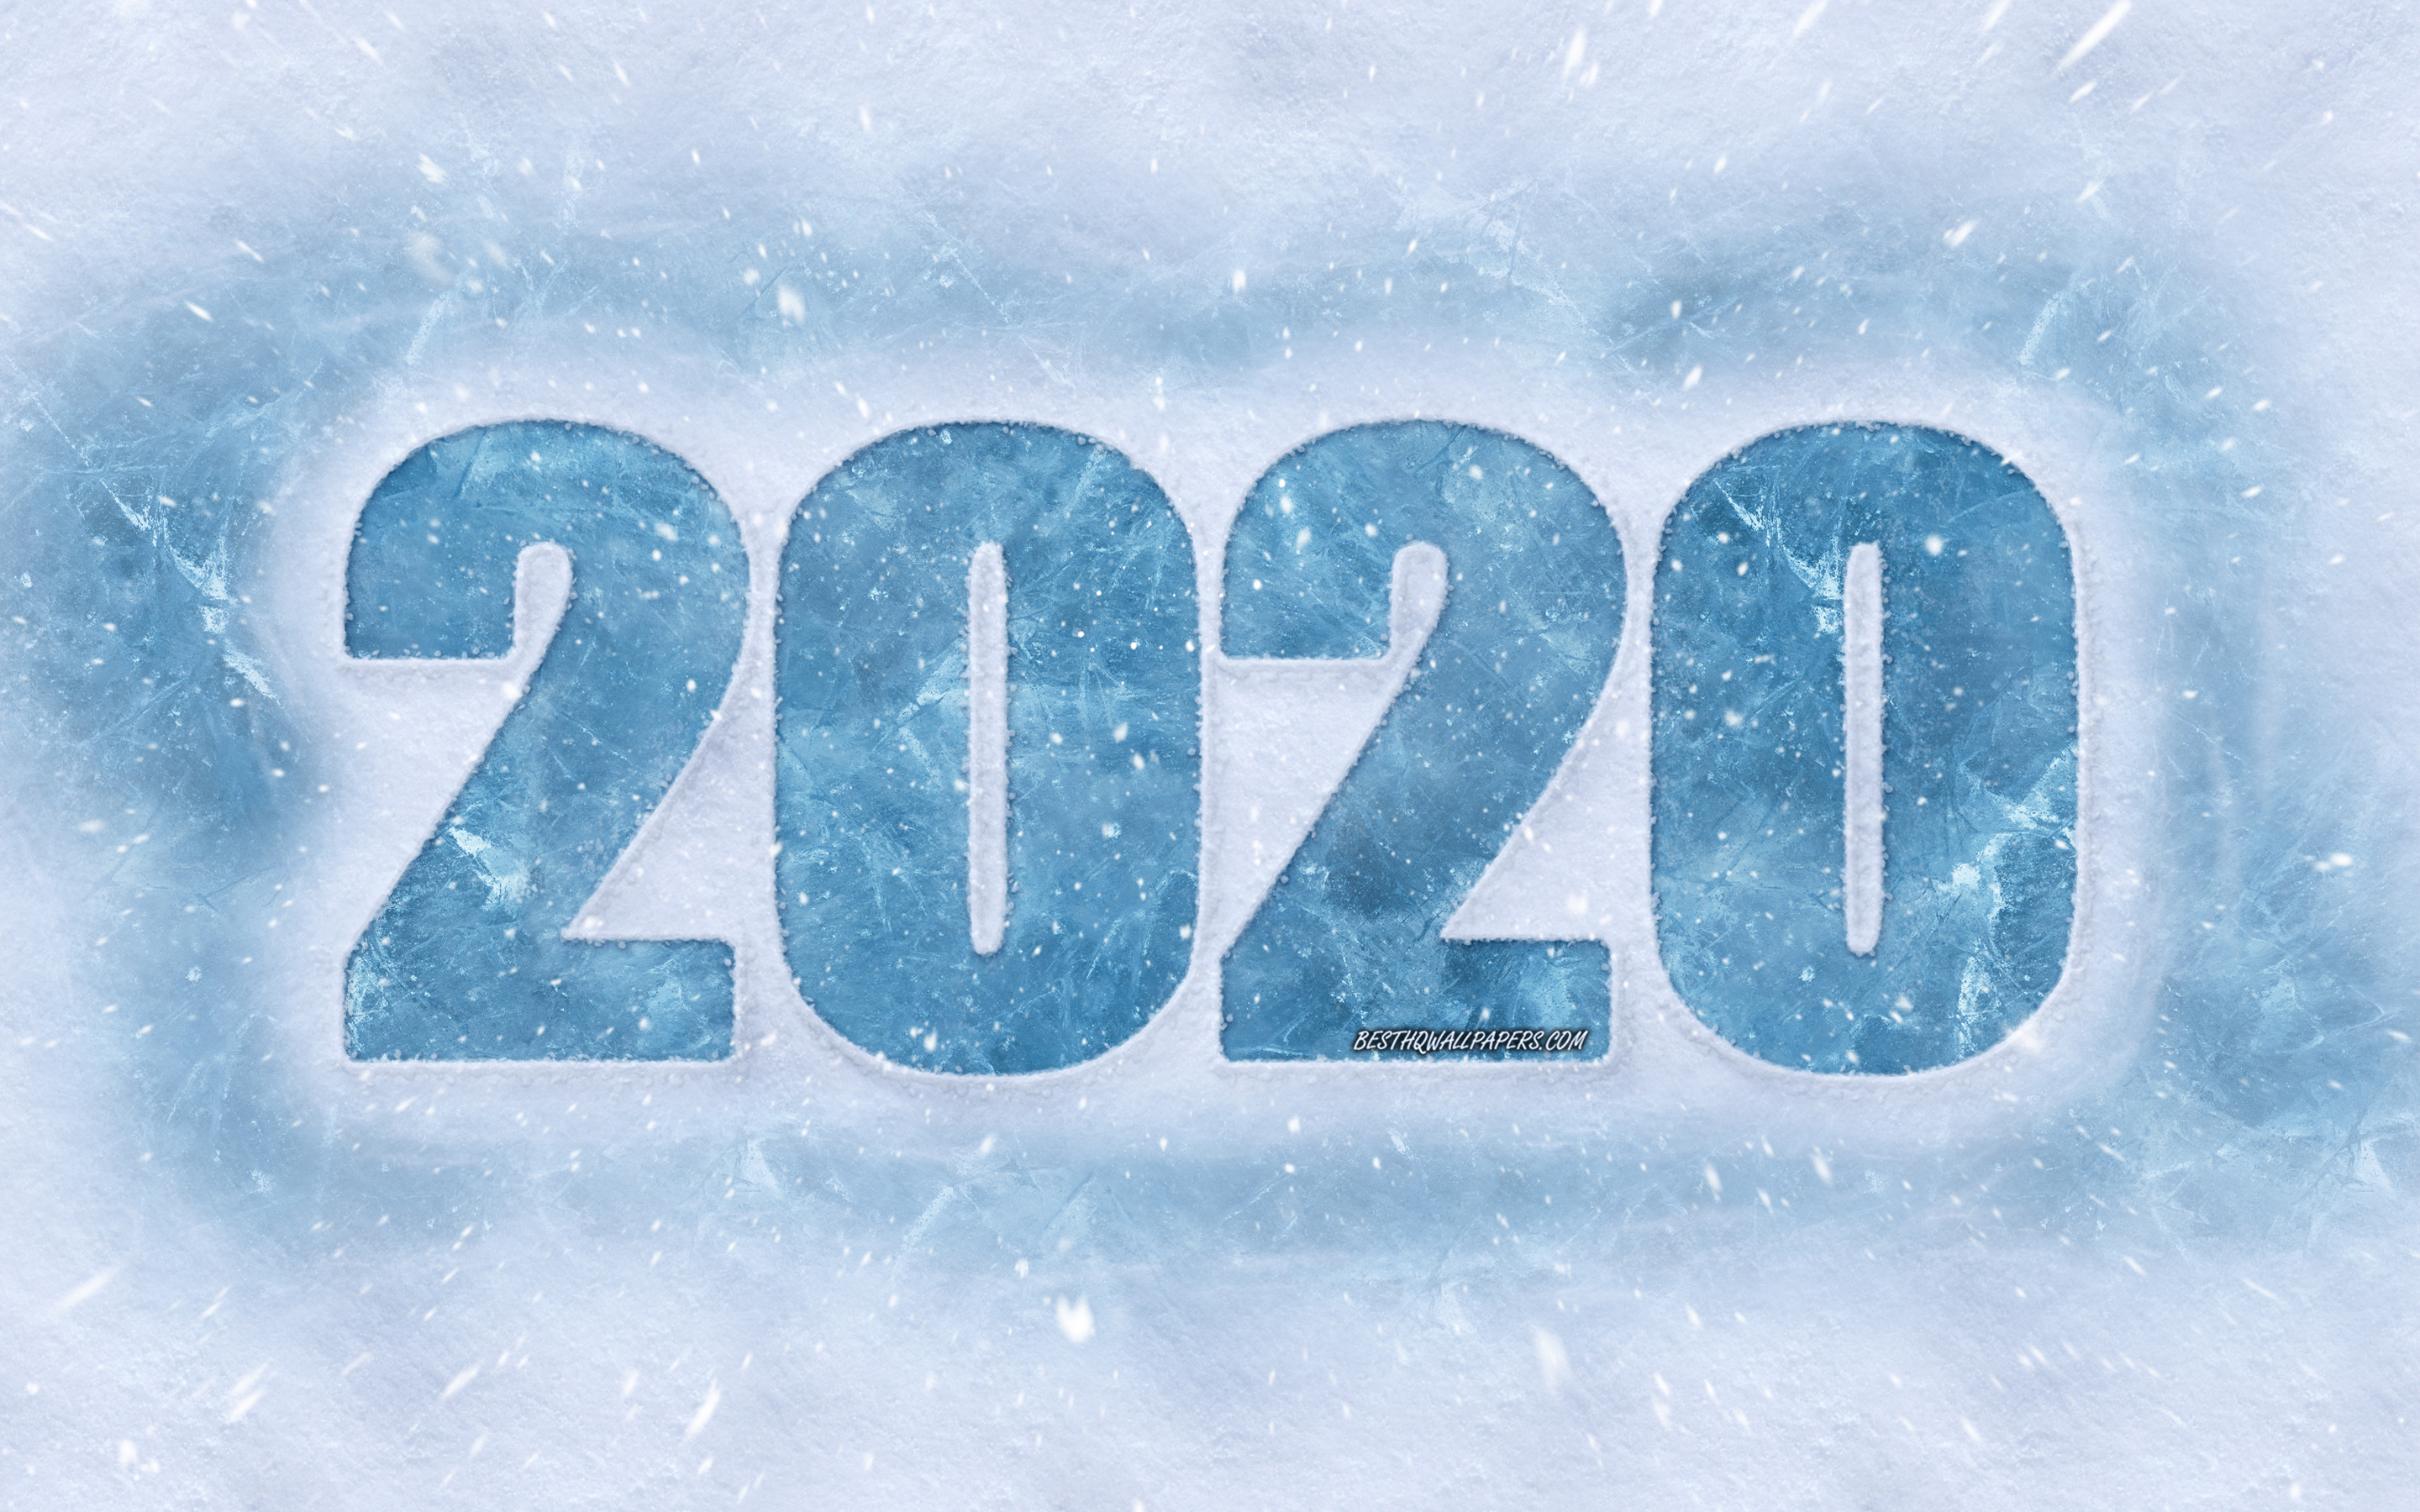 Happy New Year 2020, ice letters, snowy texture, 2020 concepts, 2020 new year, 2020 winter background, 2020, creative winter art